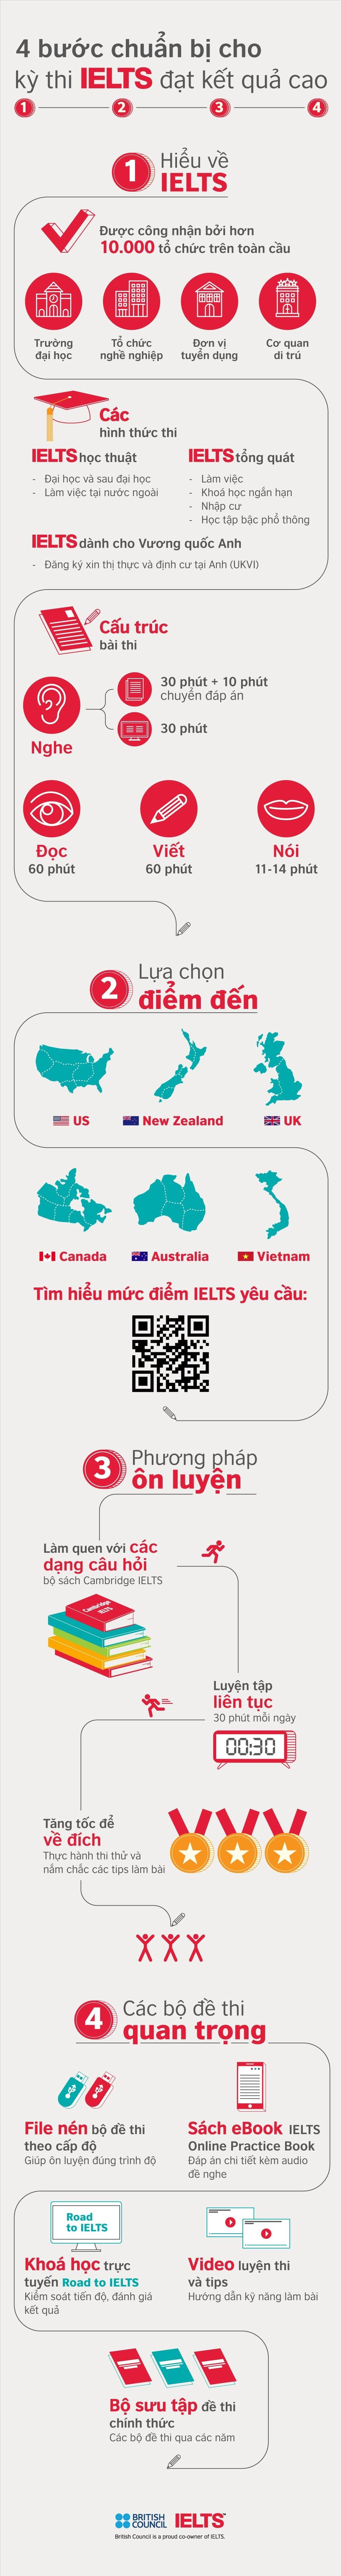 british council anh 1